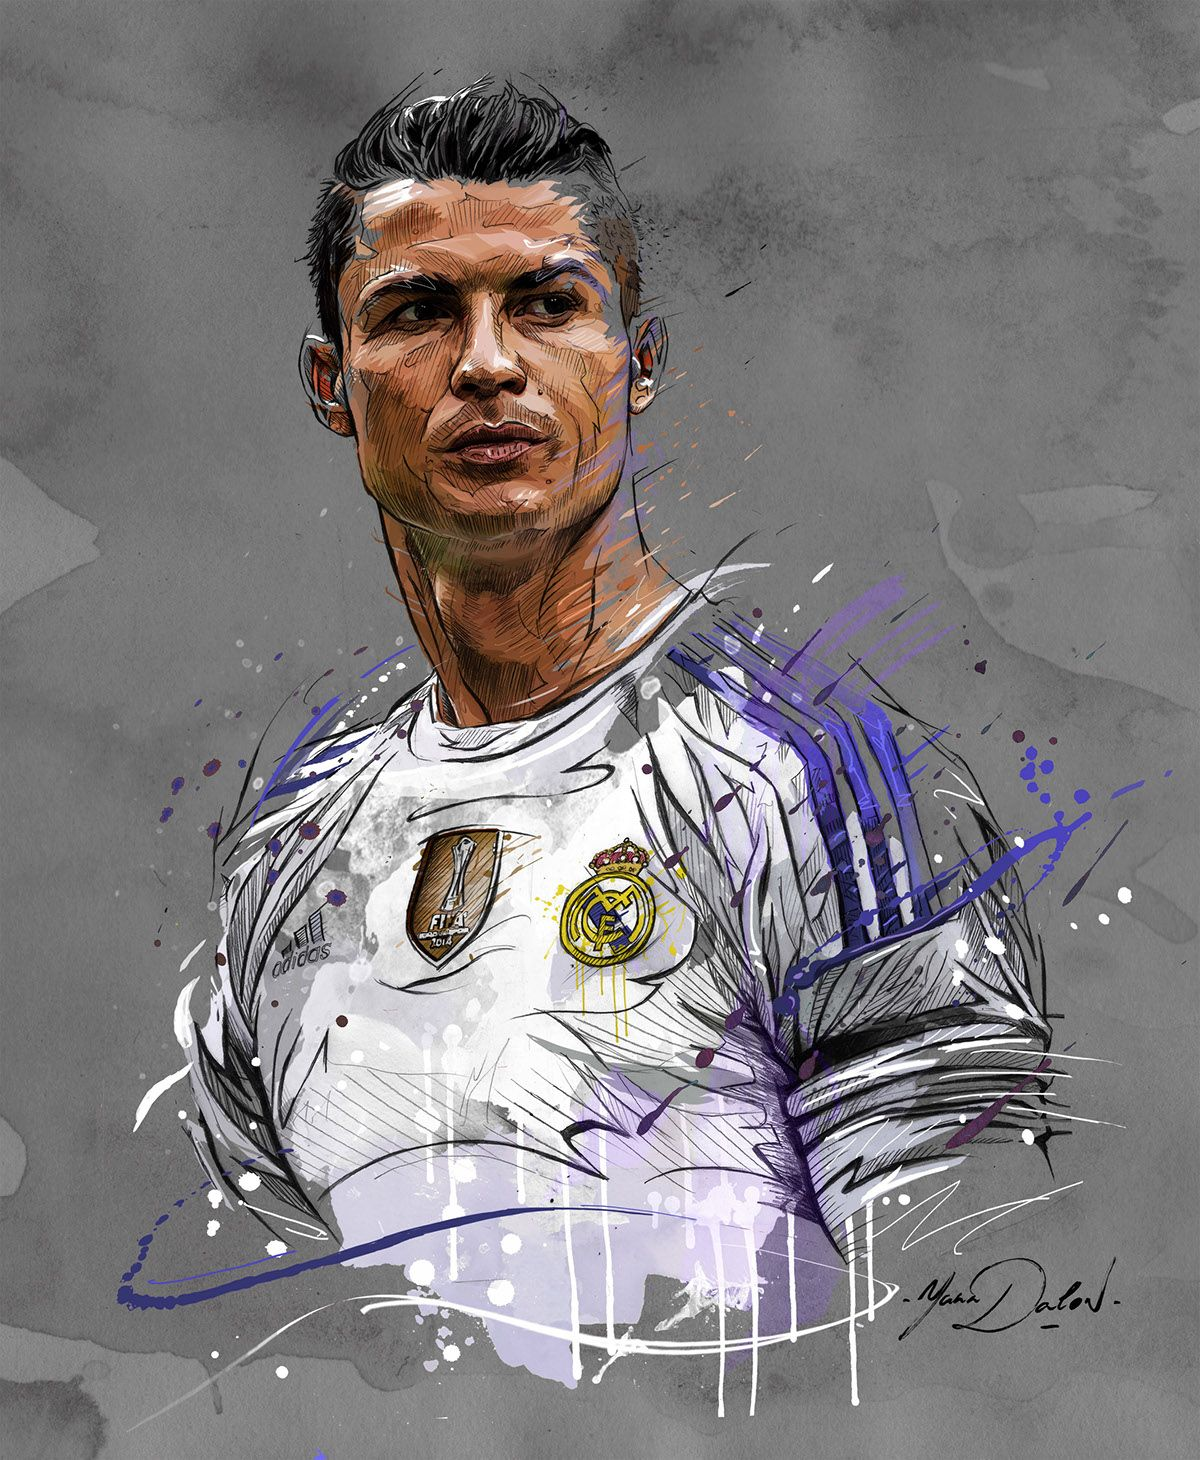 cristiano ronaldo on behance real madrid cr7 real madrid football champions of europe. Black Bedroom Furniture Sets. Home Design Ideas